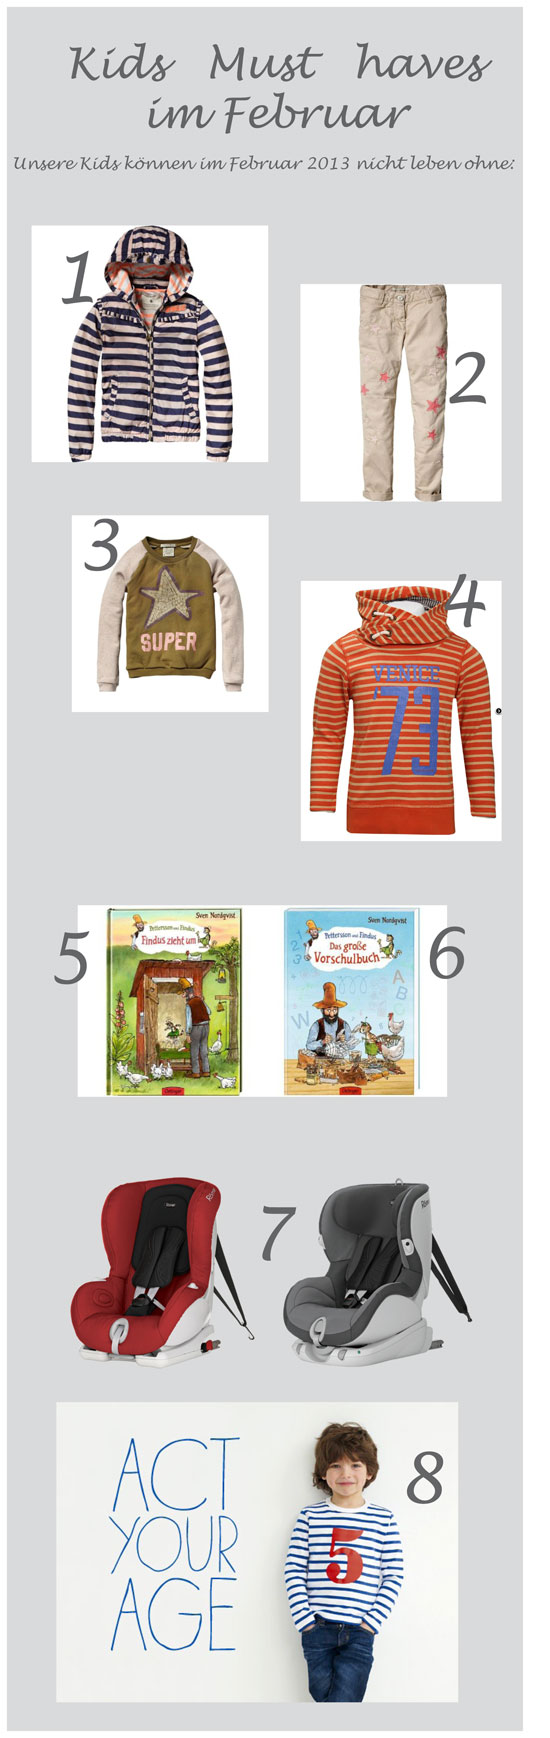 Kids-Must-haves-im-Februar